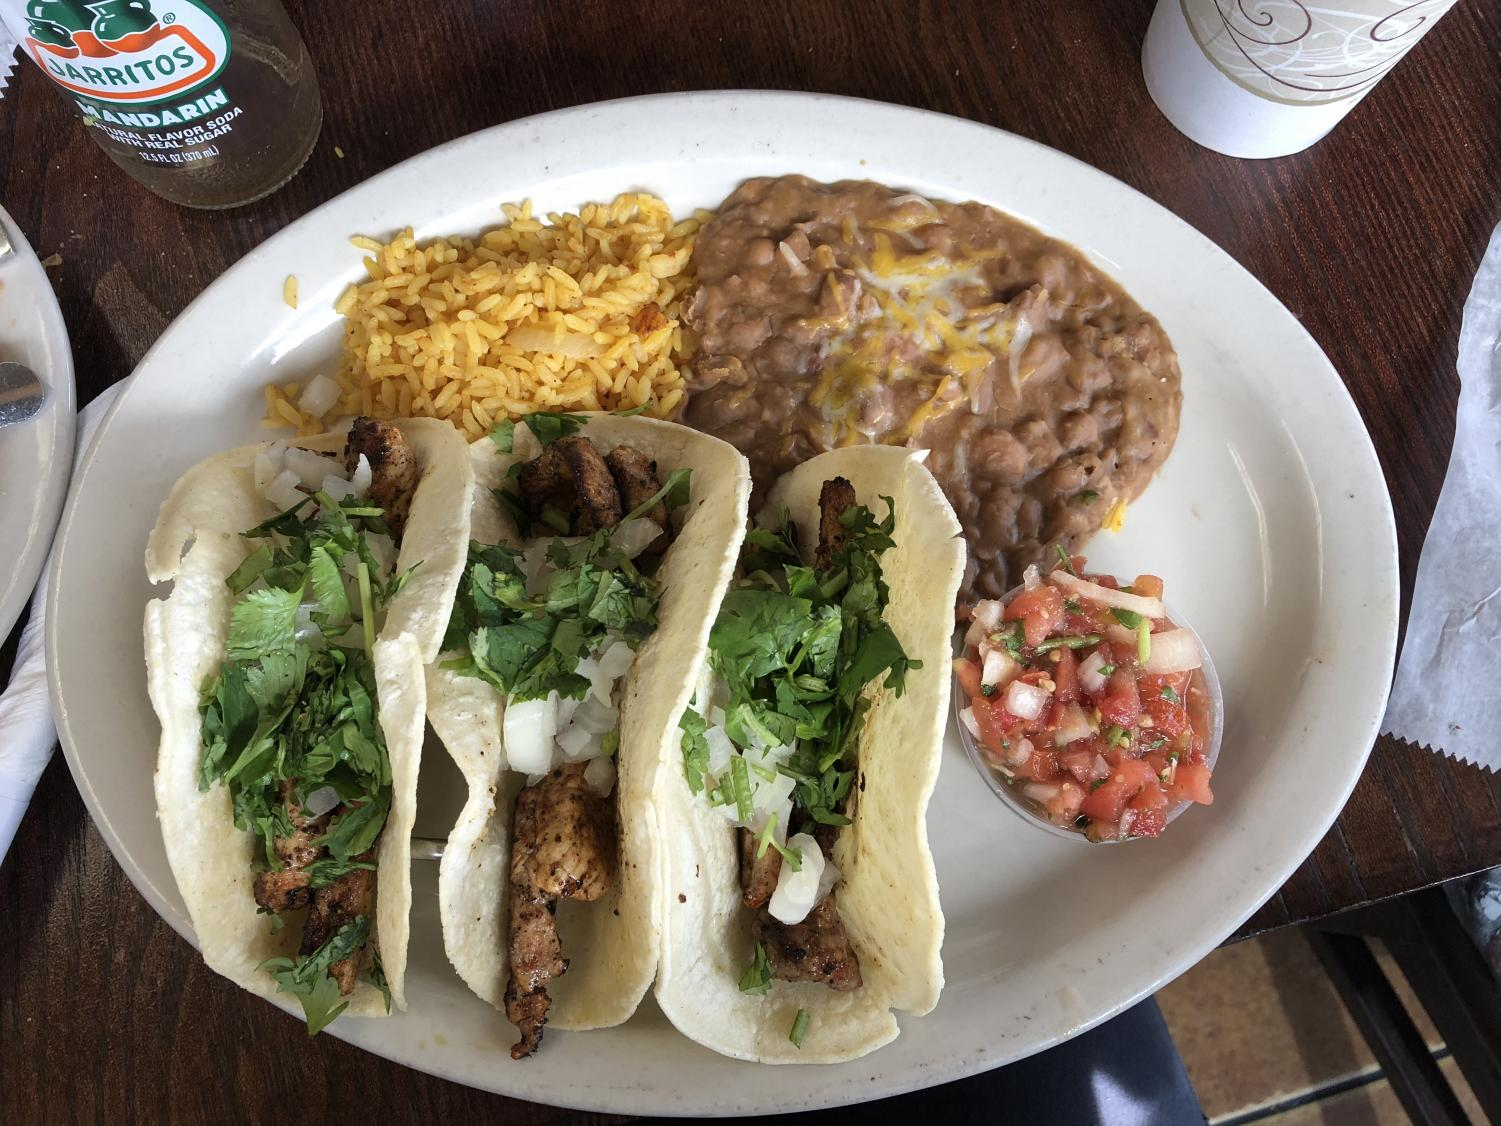 Taco Rico serves excellent meals at affordable prices.